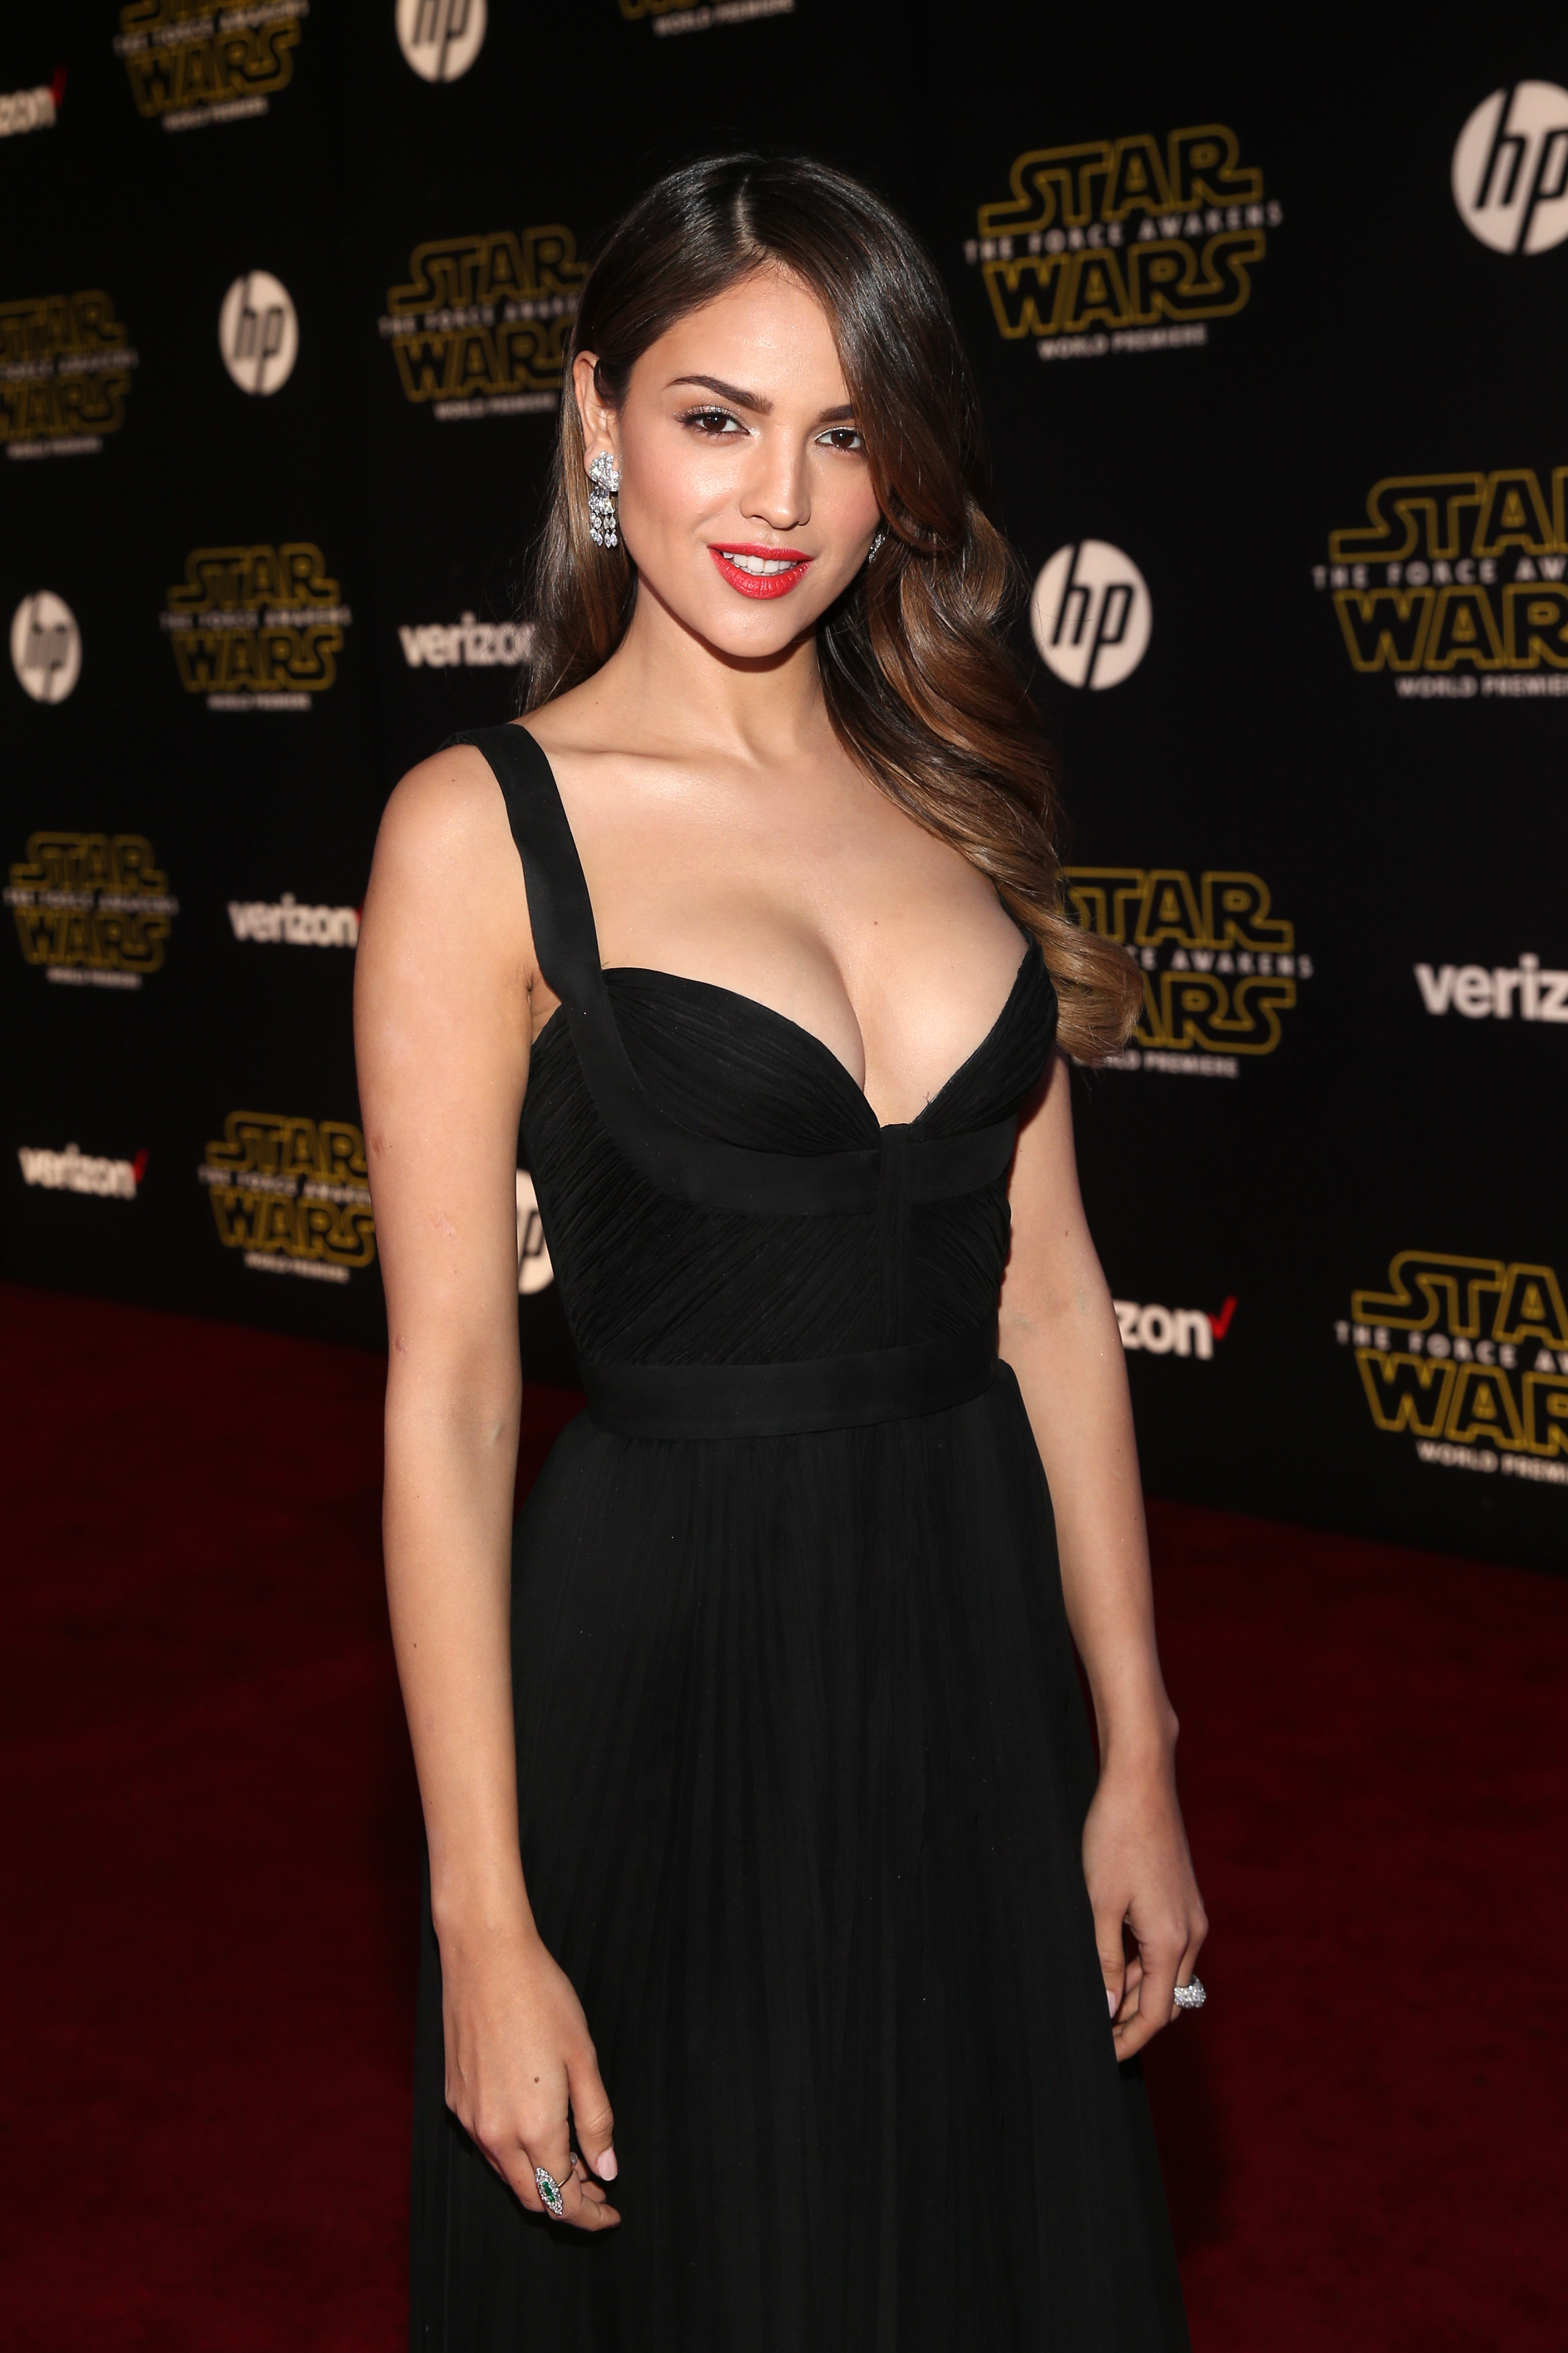 HOLLYWOOD, CA - DECEMBER 14:  Actress Eiza Gonz?lez attends the World Premiere of ?Star Wars: The Force Awakens? at the Dolby, El Capitan, and TCL Theatres on December 14, 2015 in Hollywood, California.  (Photo by Jesse Grant/Getty Images for Disney) *** Local Caption *** Eiza Gonz?lez